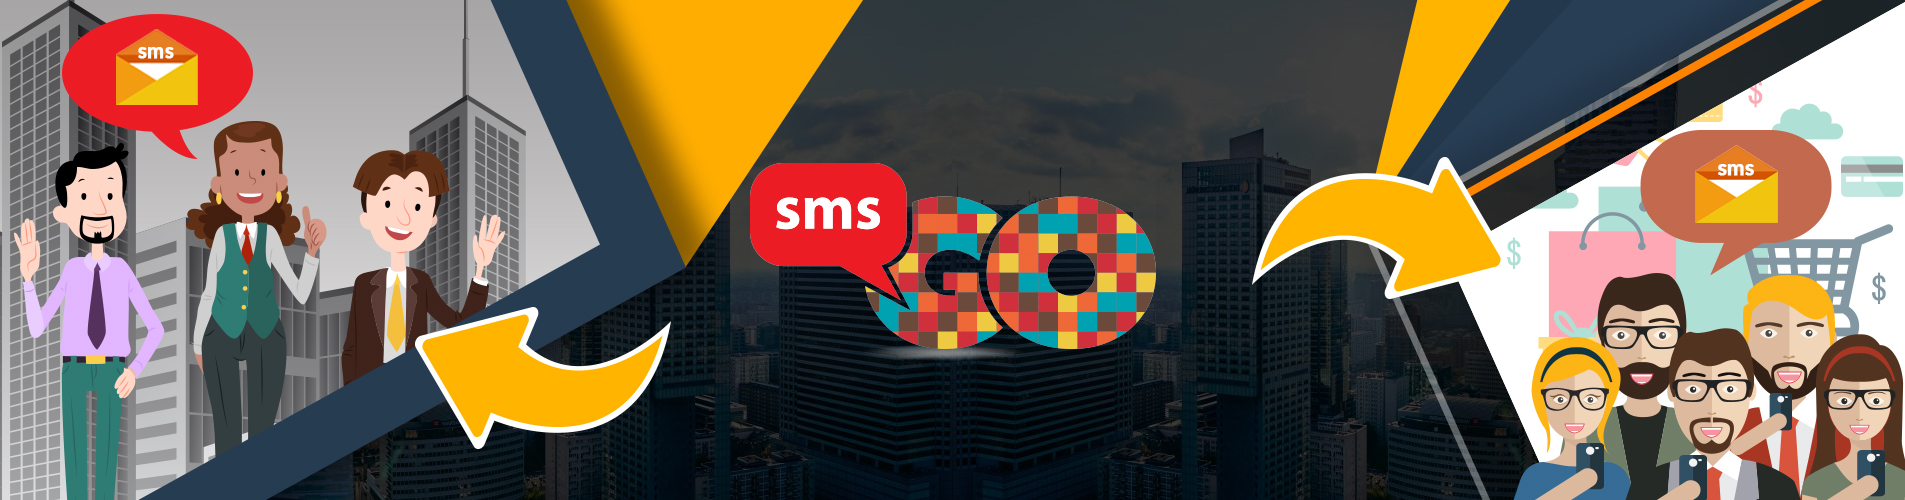 SMS Go Logo reaching out to business customer service and end users